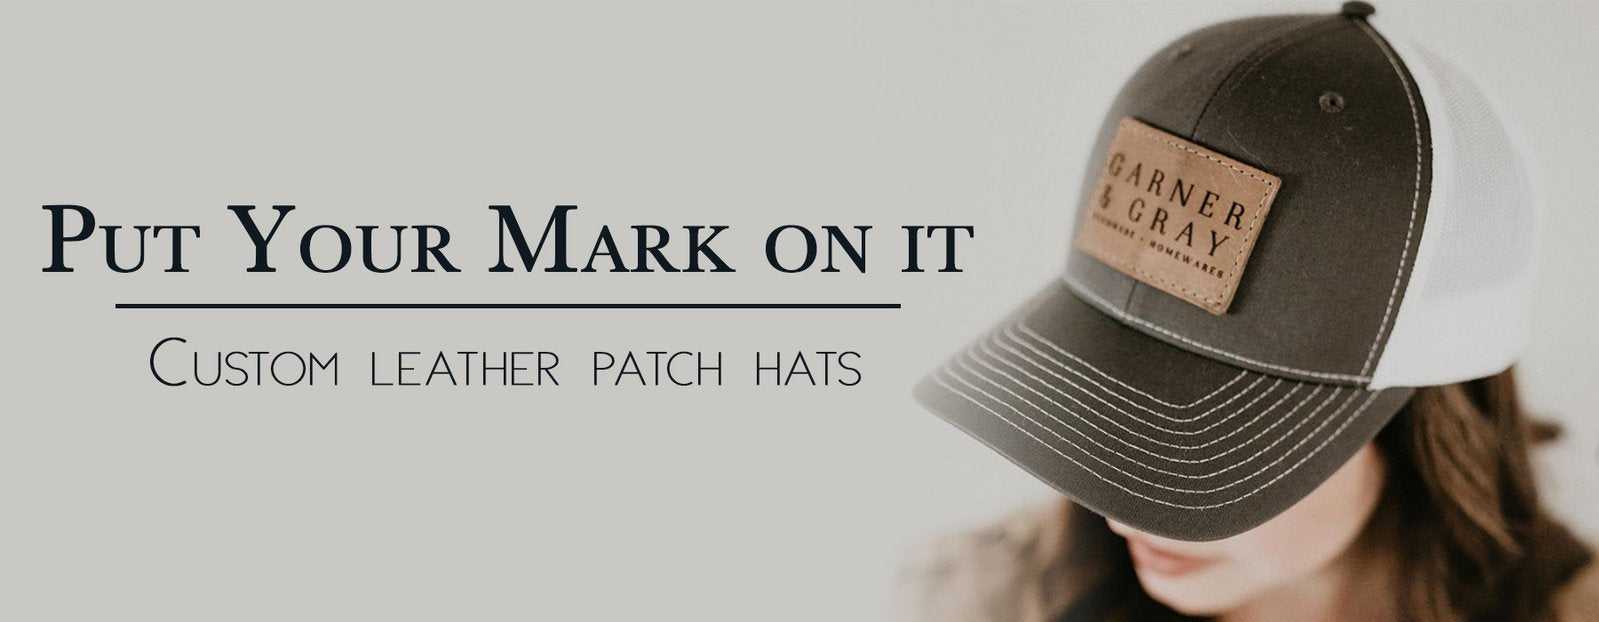 Custom Leather Patch Hats - Hats for Adults & Kids with Logo